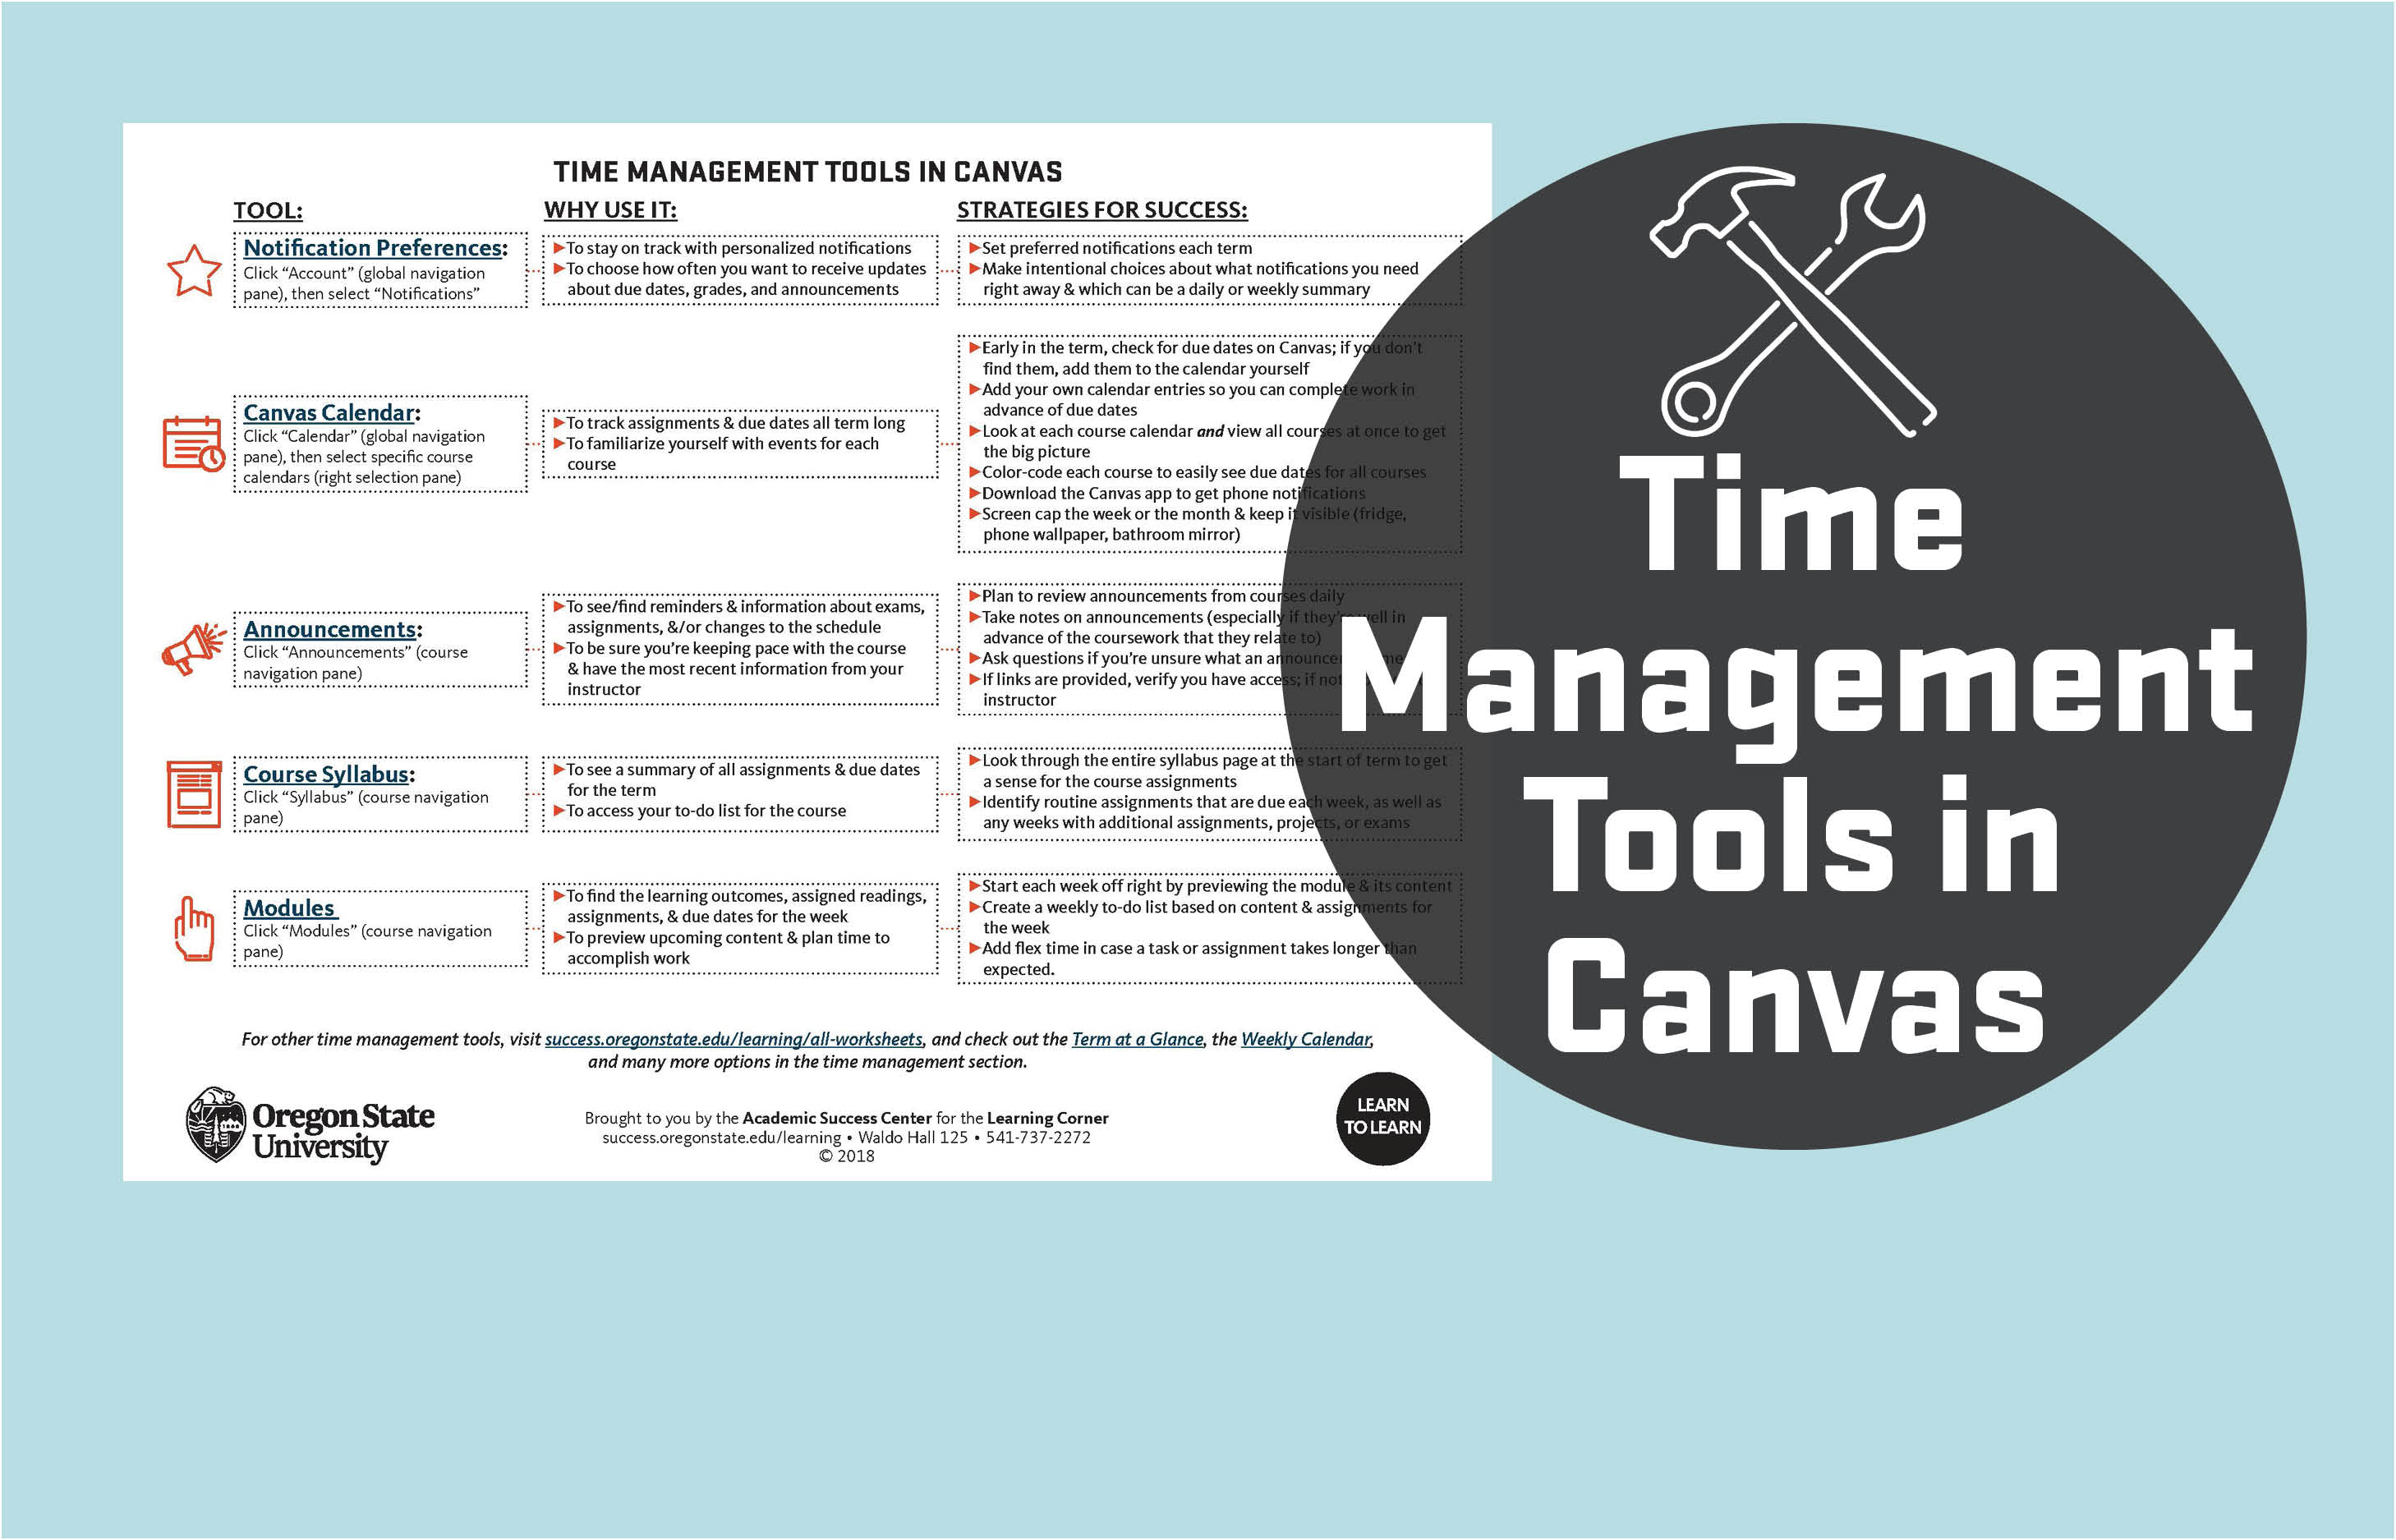 Time management tools in Canvas